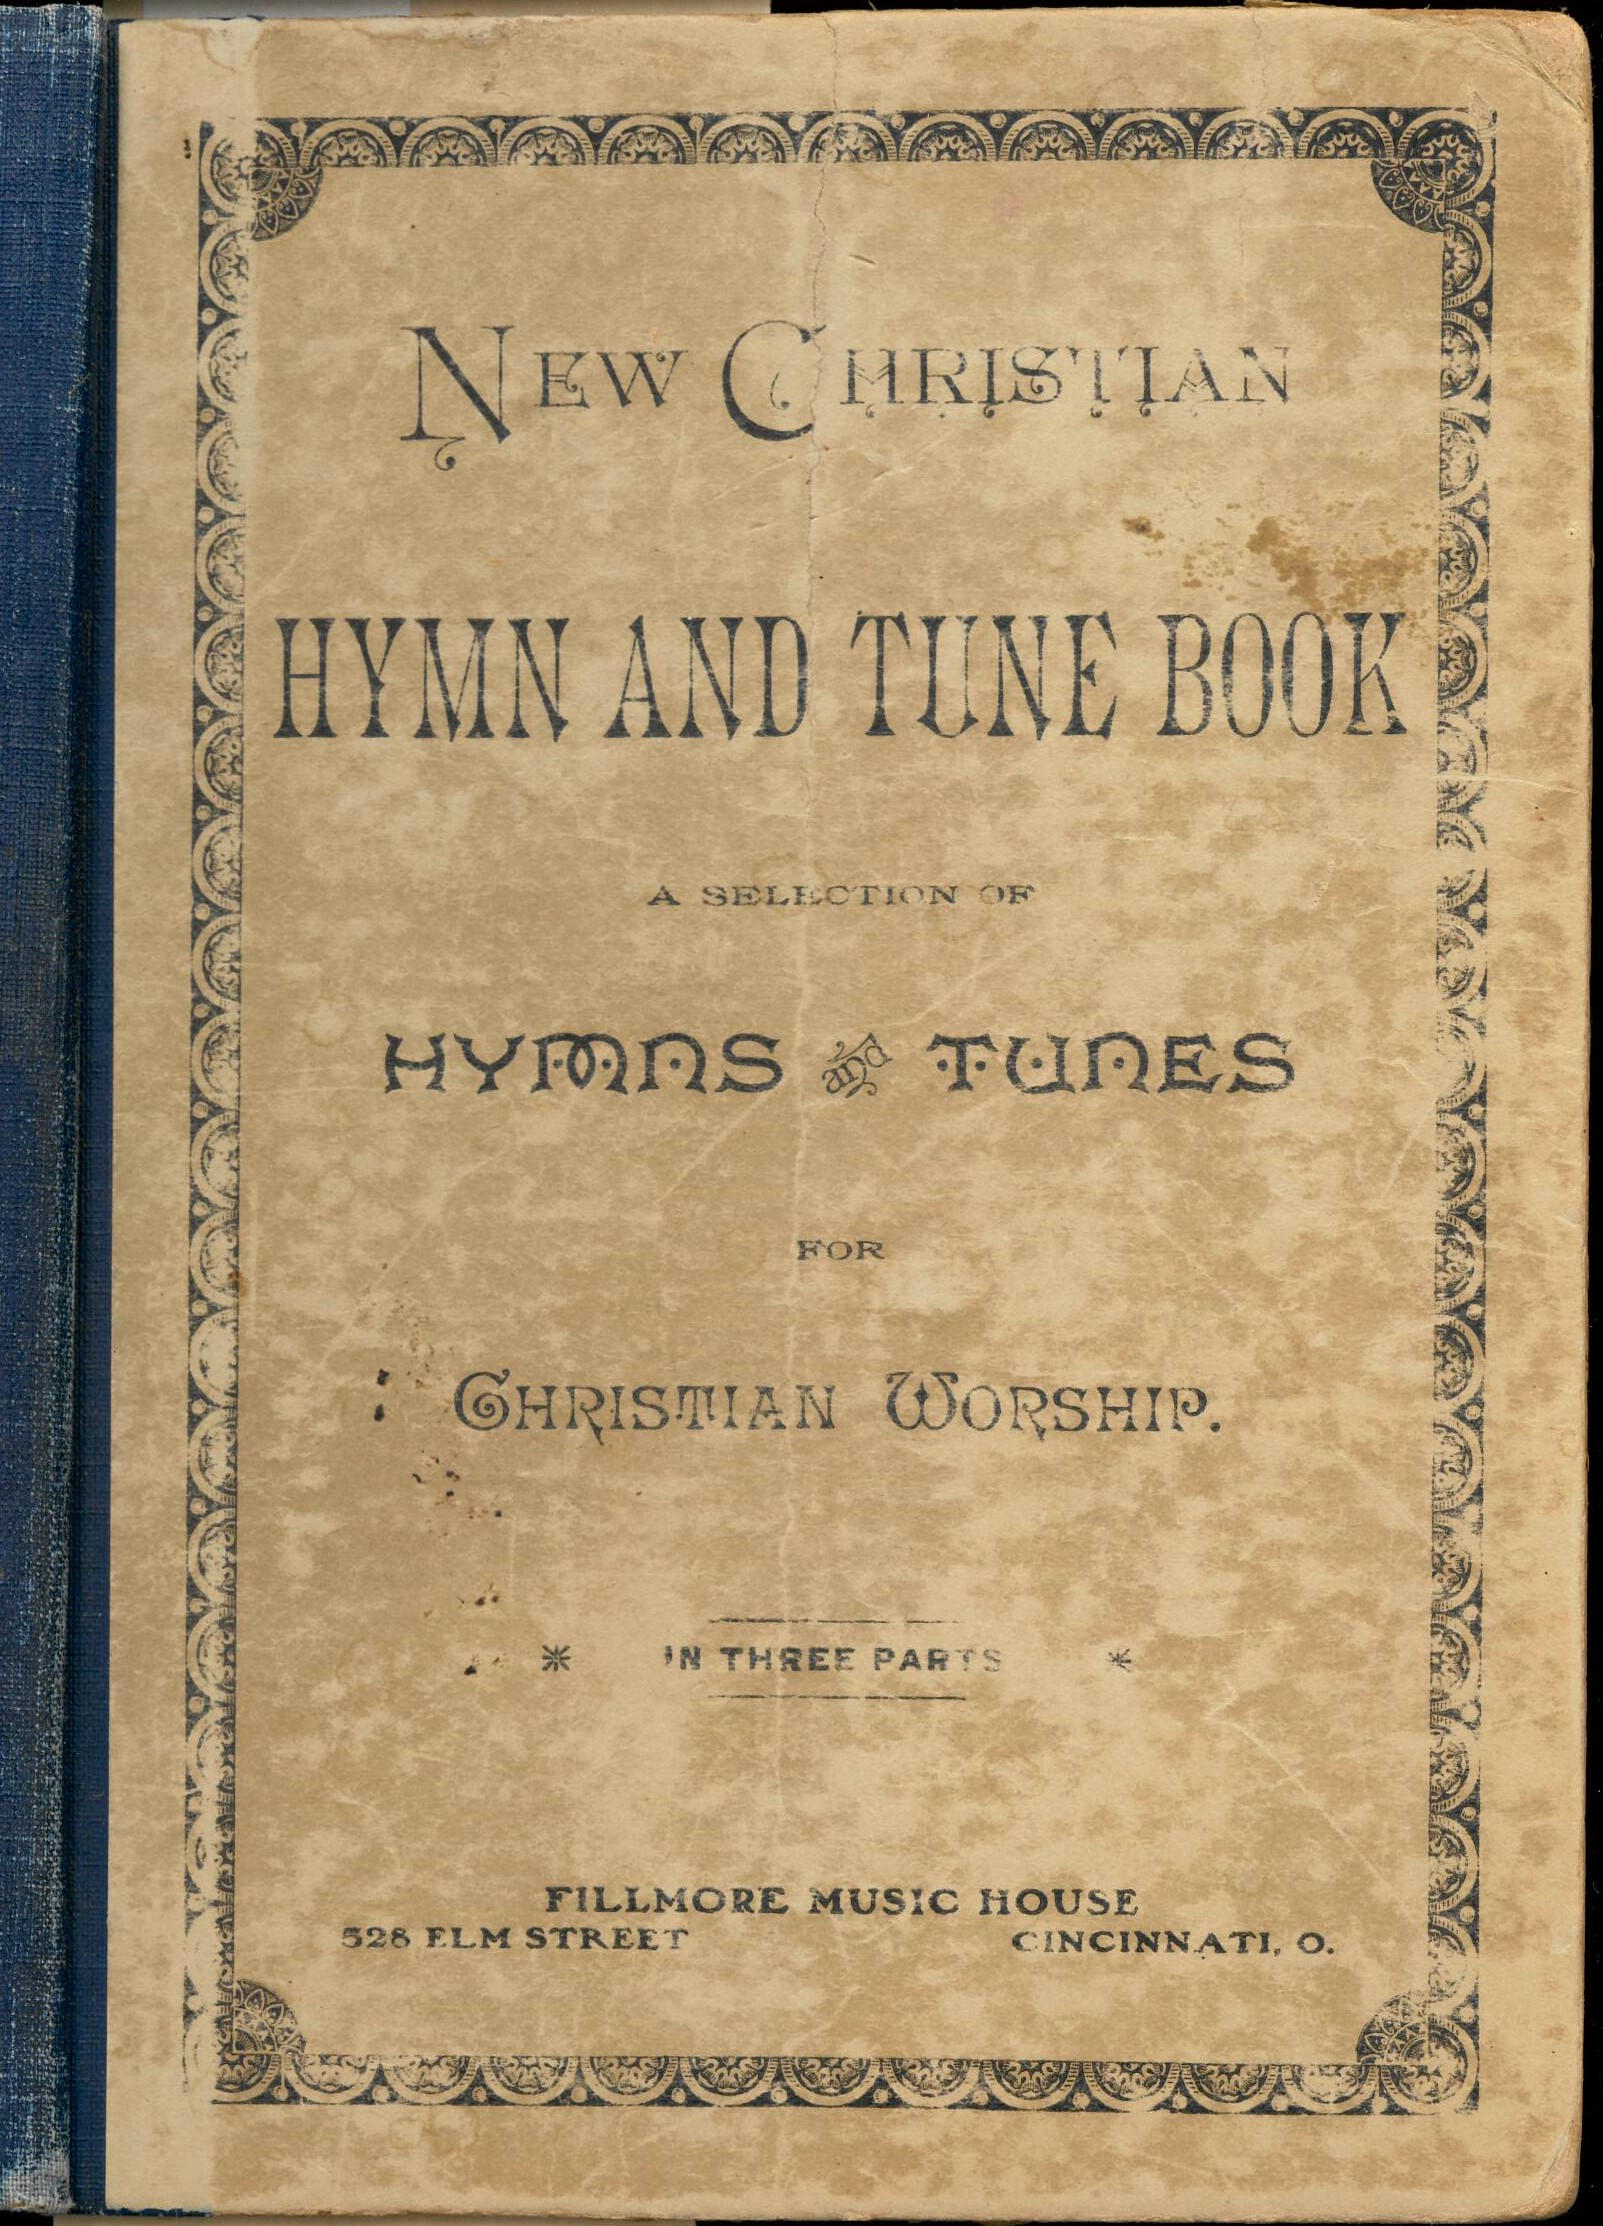 The New Christian Hymn and Tune Book: A Selection of Hymns and Tunes for Christian Worship. Fillmore Music House: Cincinnati, 1887. Front cover.